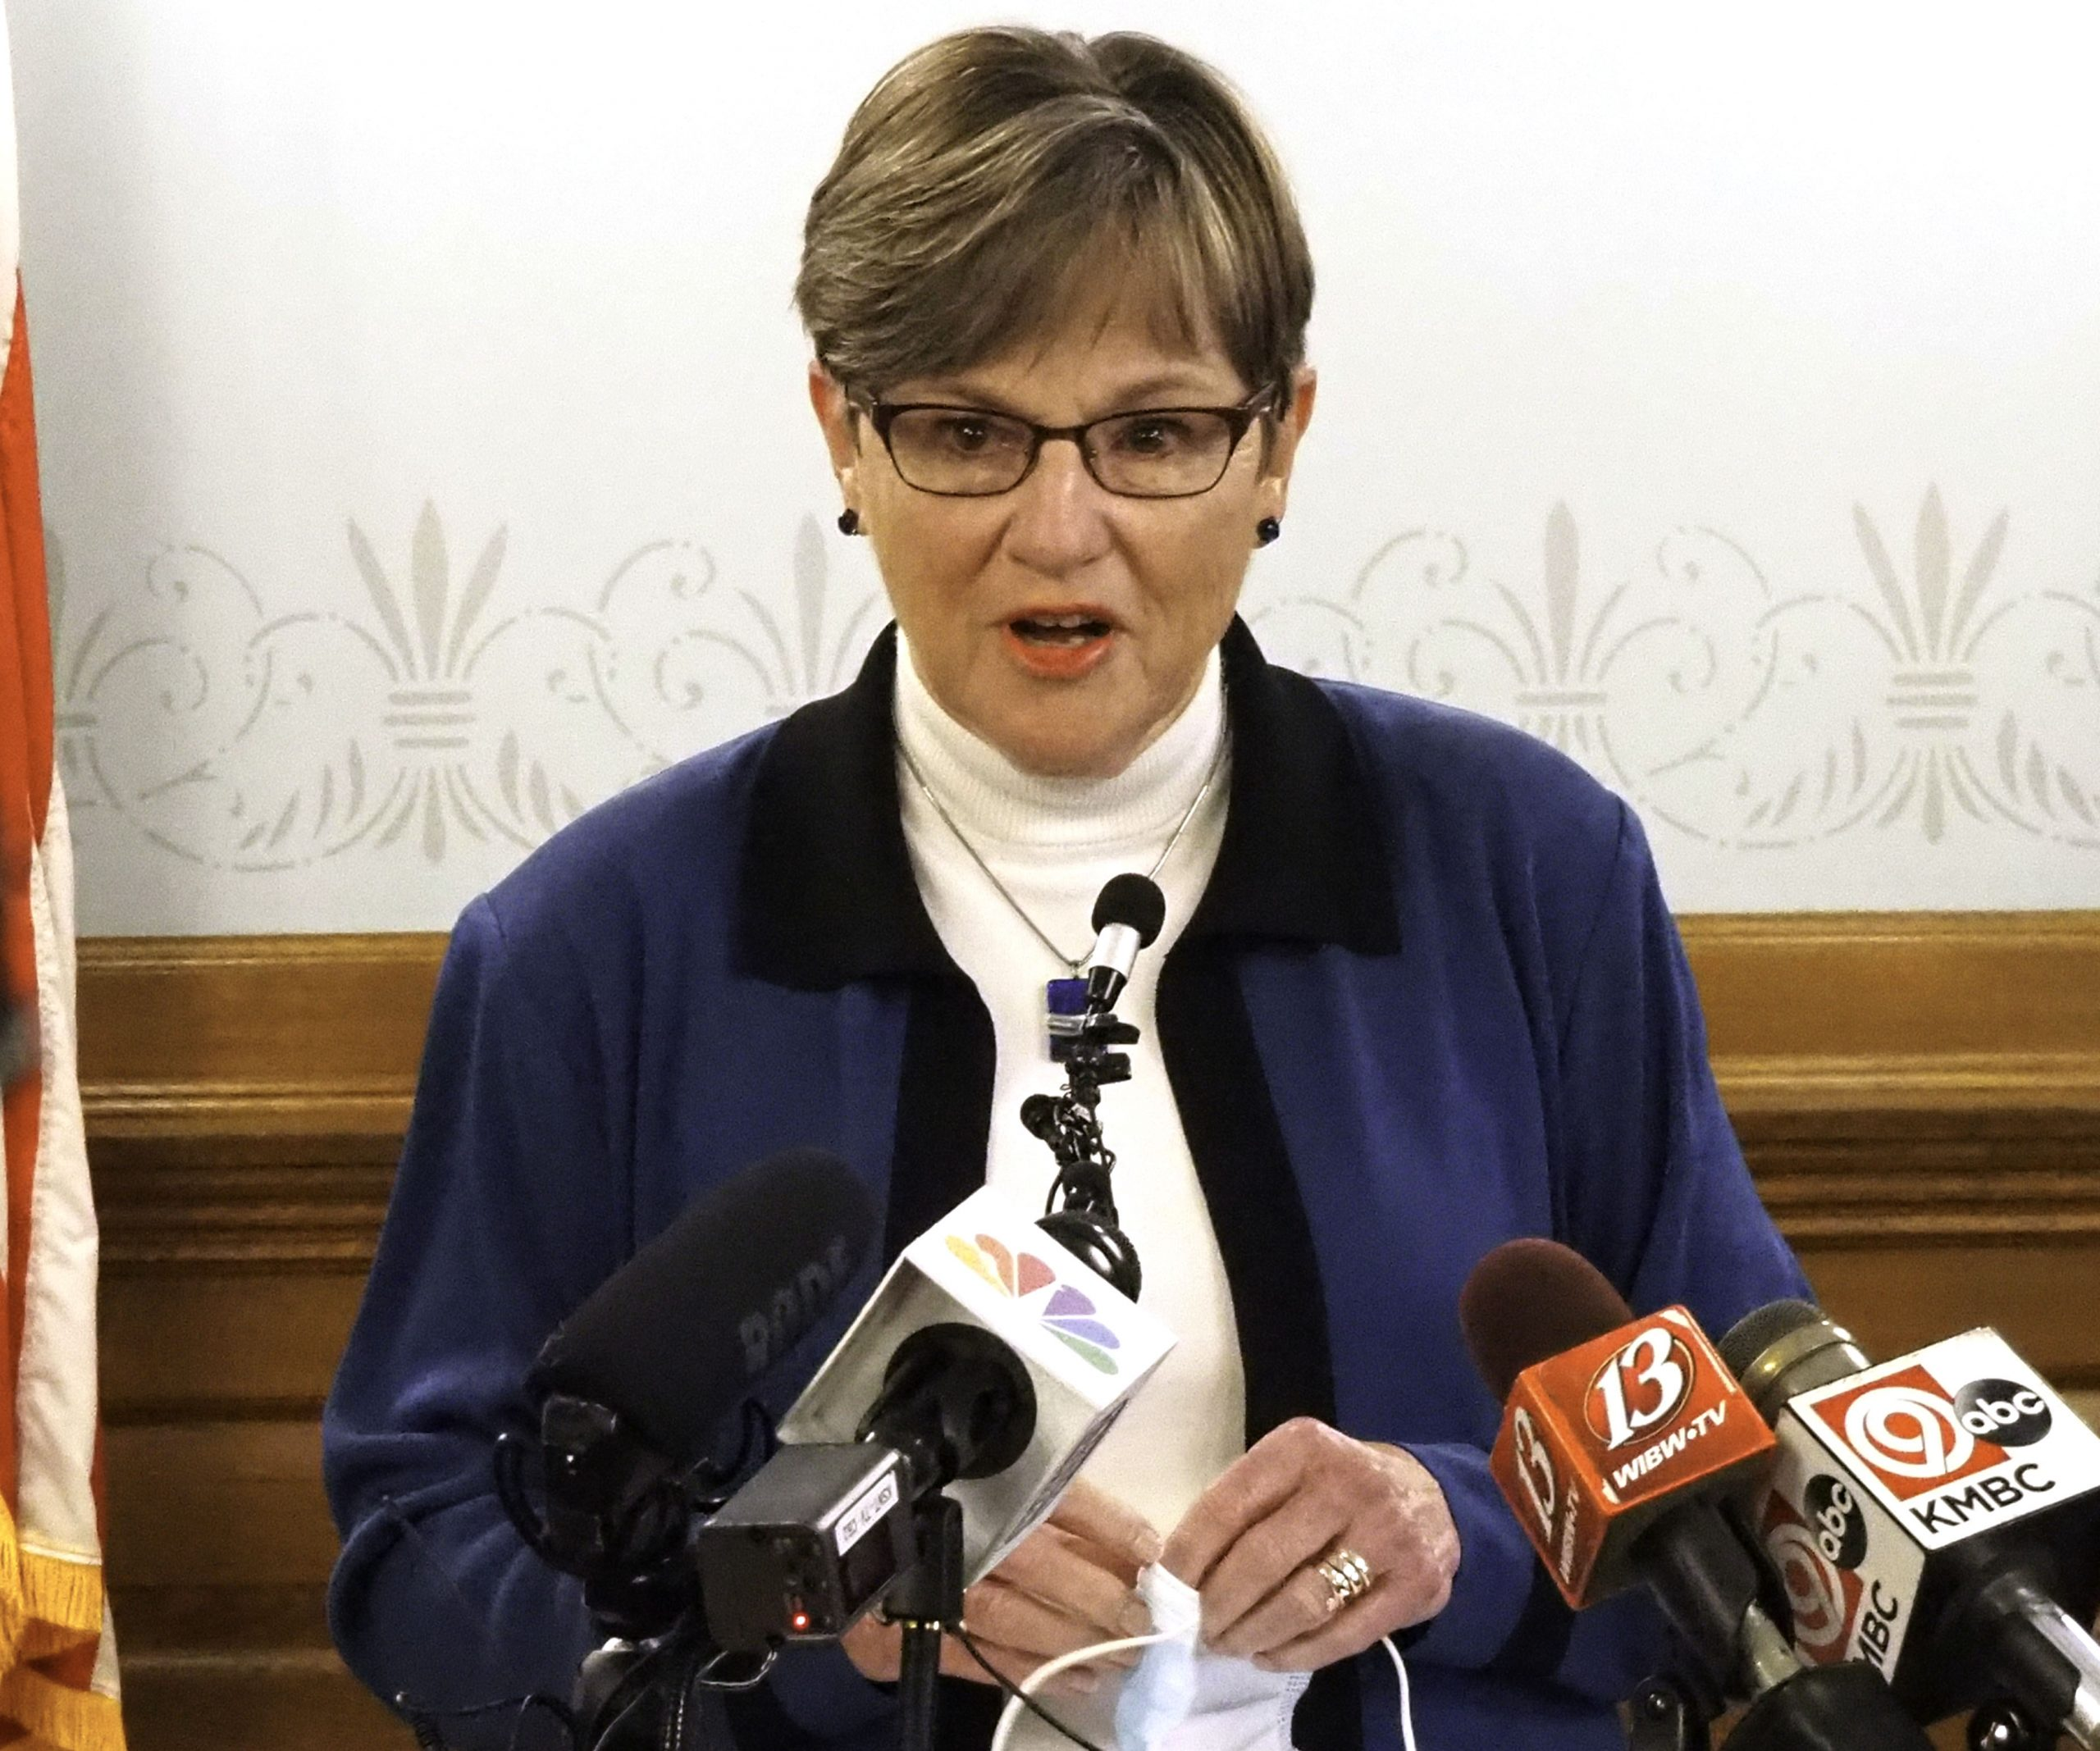 Gov. Laura Kelly said Wednesday she extended an executive order allowing people under age 65 to apply for driver's license renewals online. (Sherman Smith/Kansas Reflector)